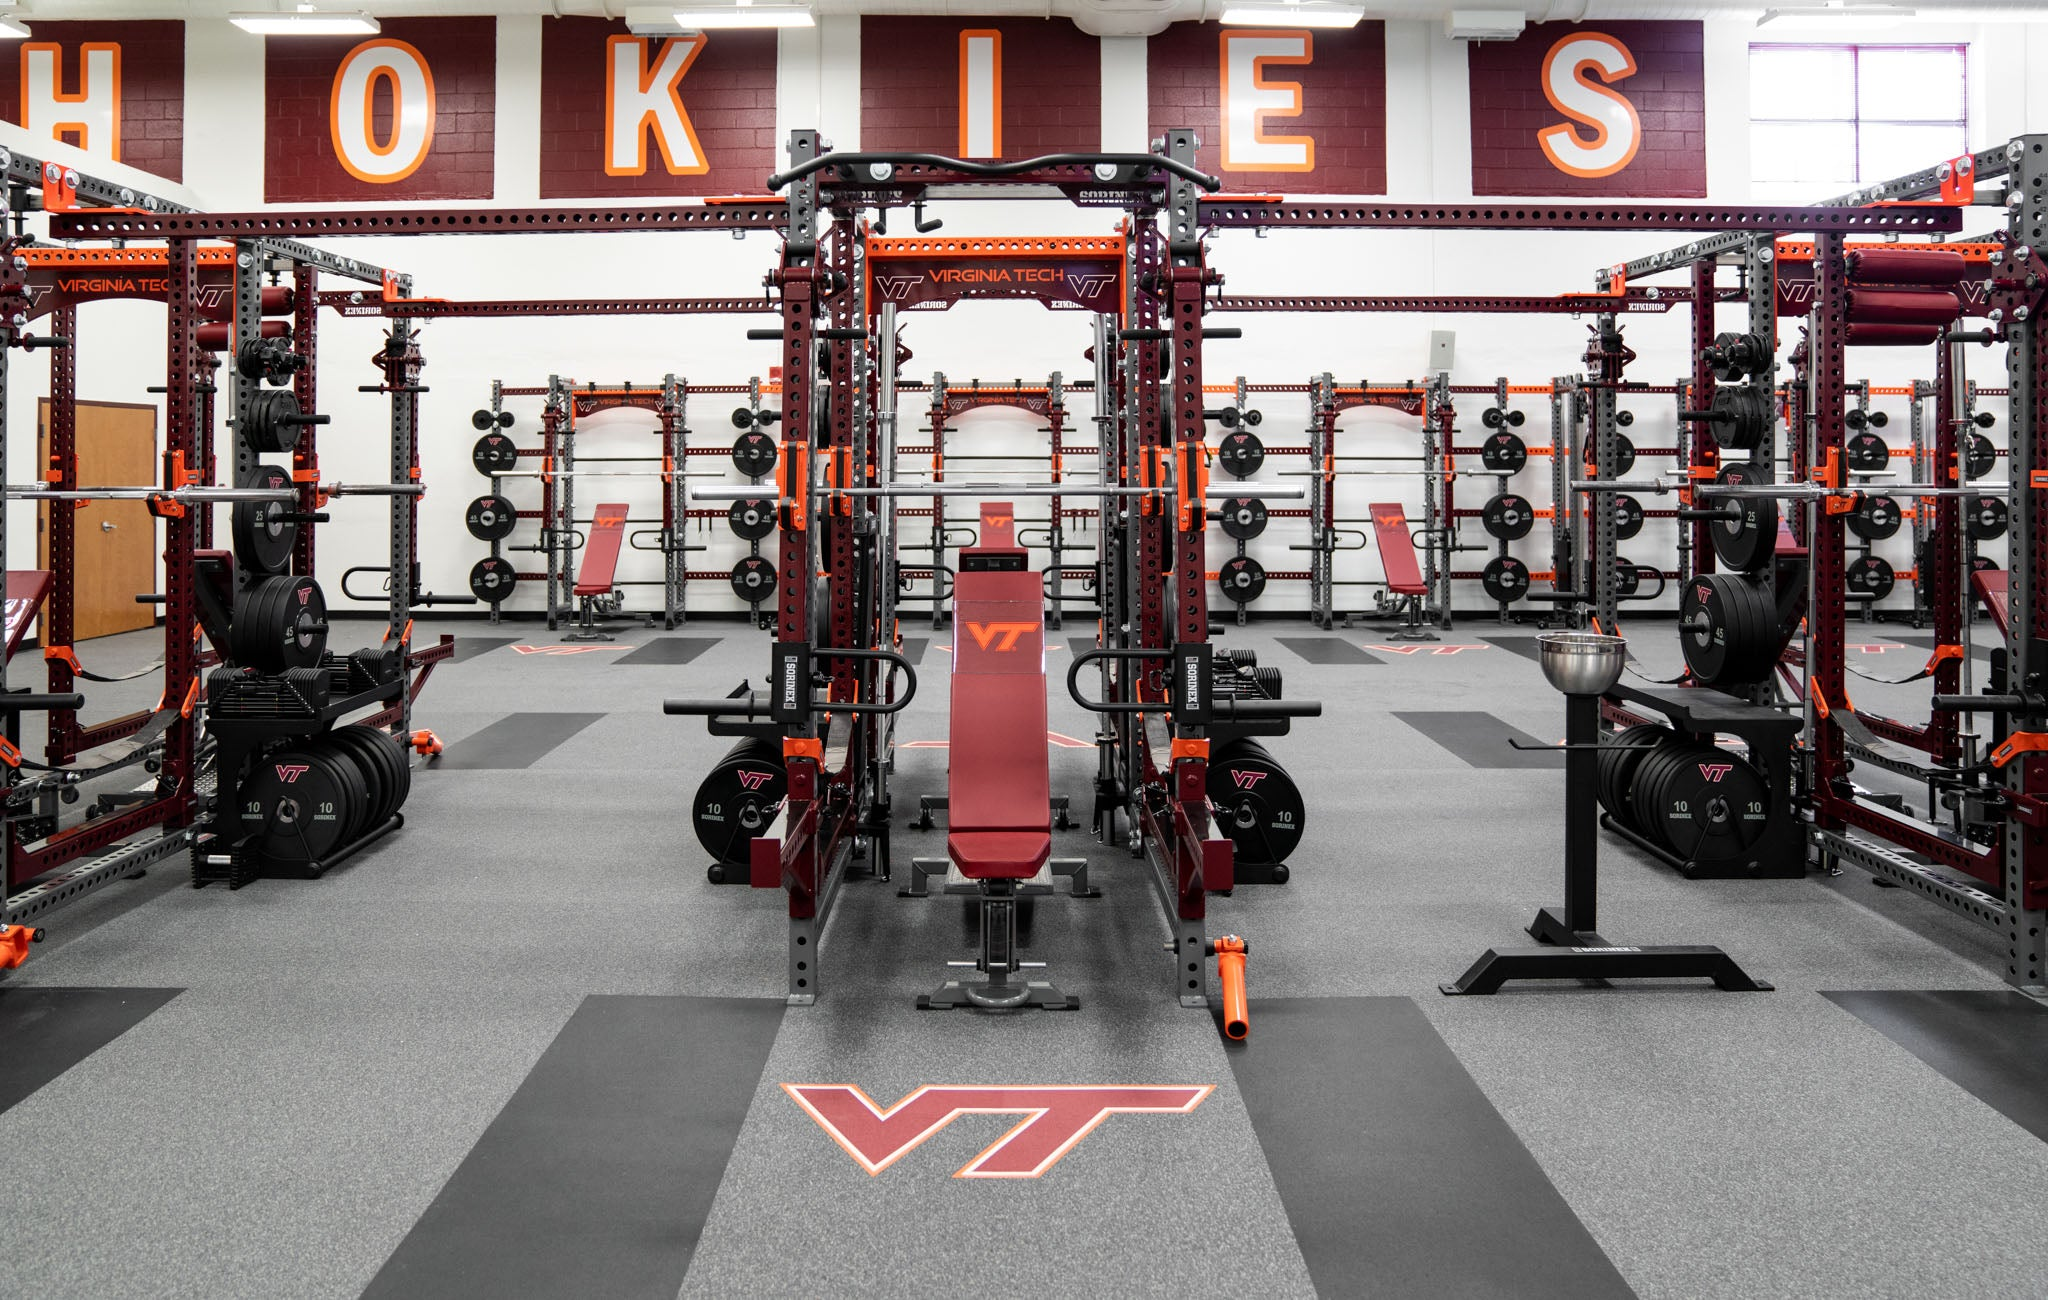 Virginia Tech Olympic Weight Room